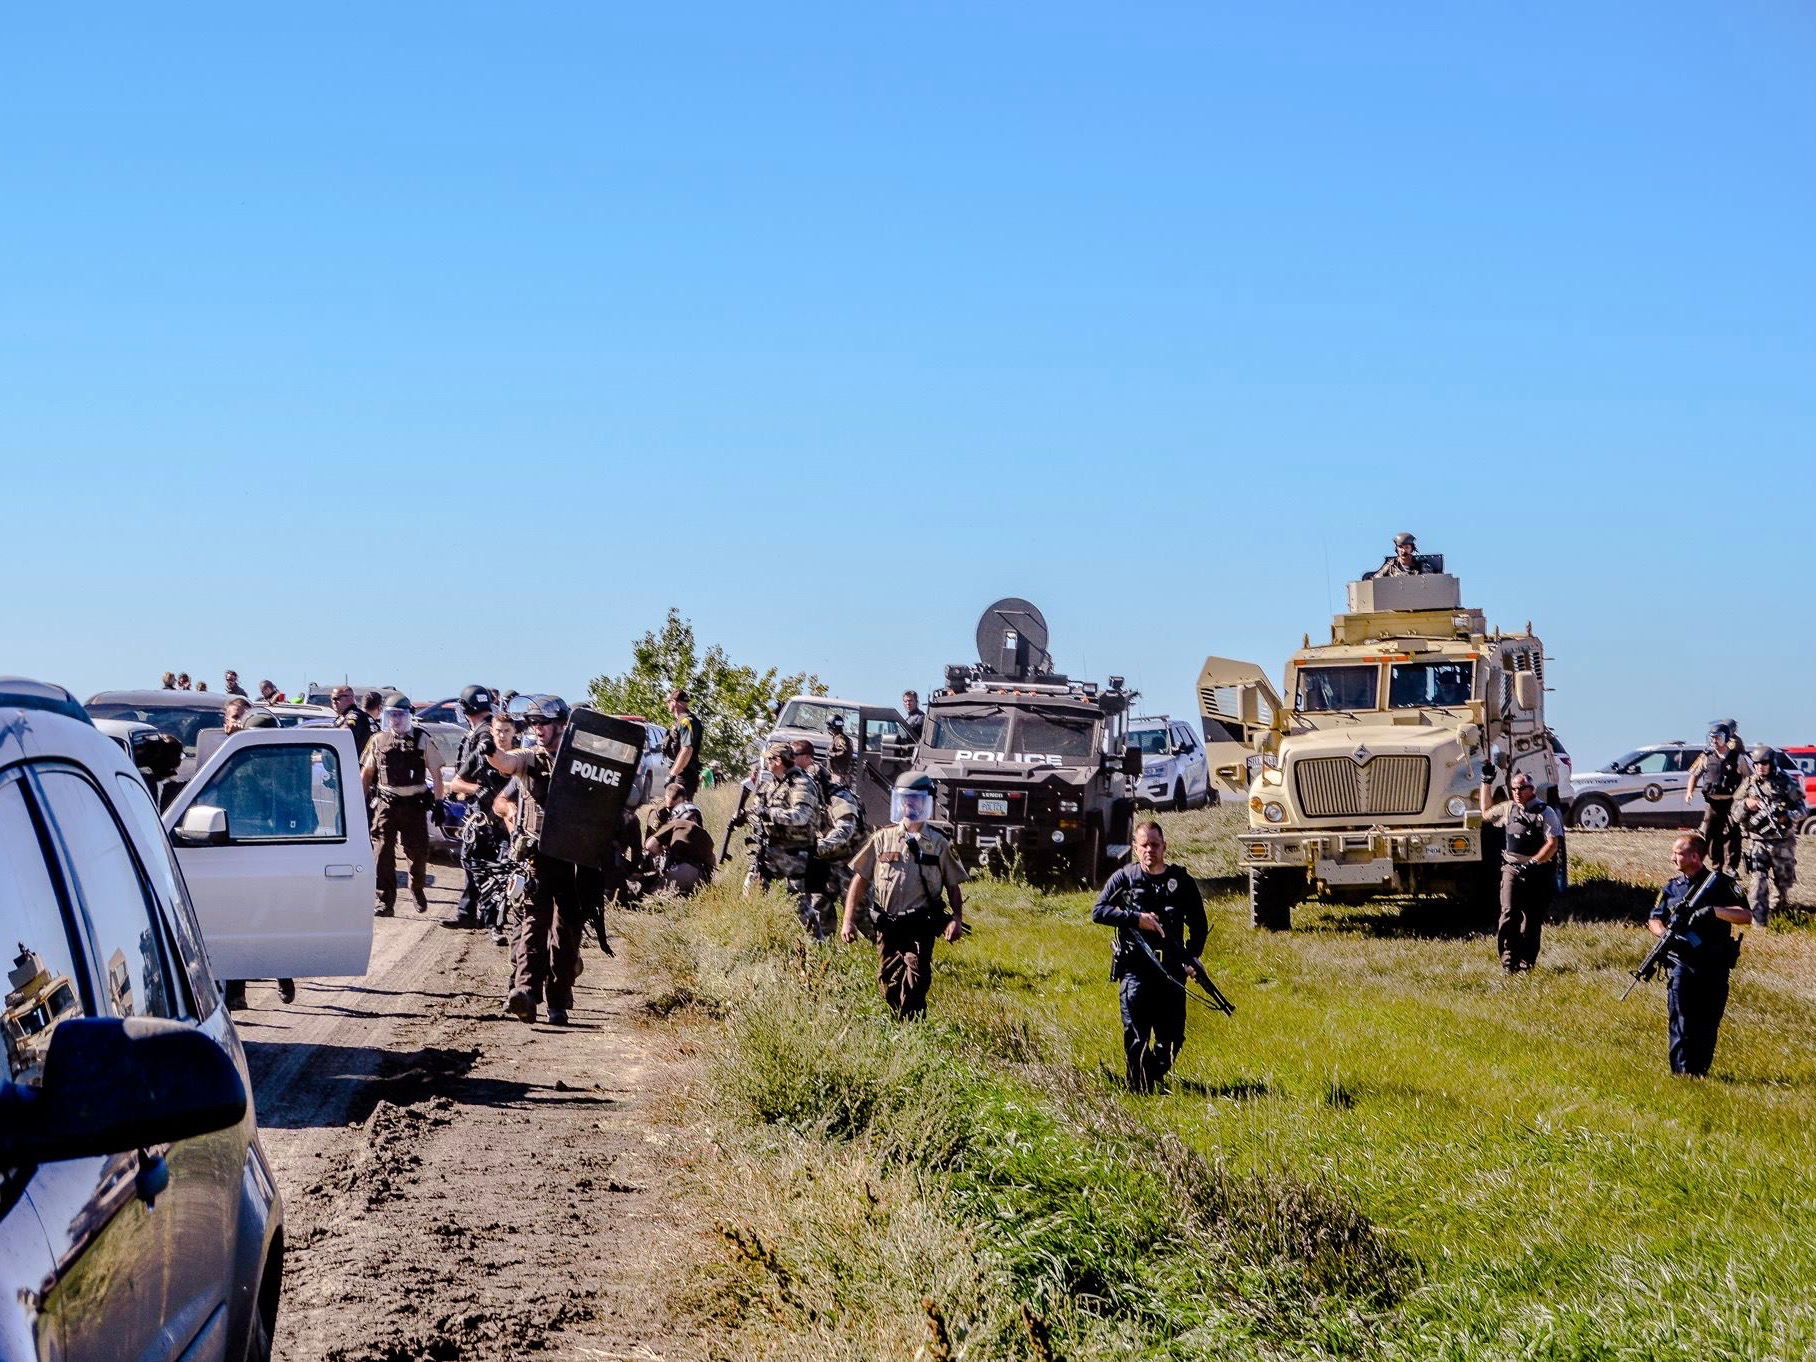 County sheriff announces additional arrests of #NoDAPL resisters